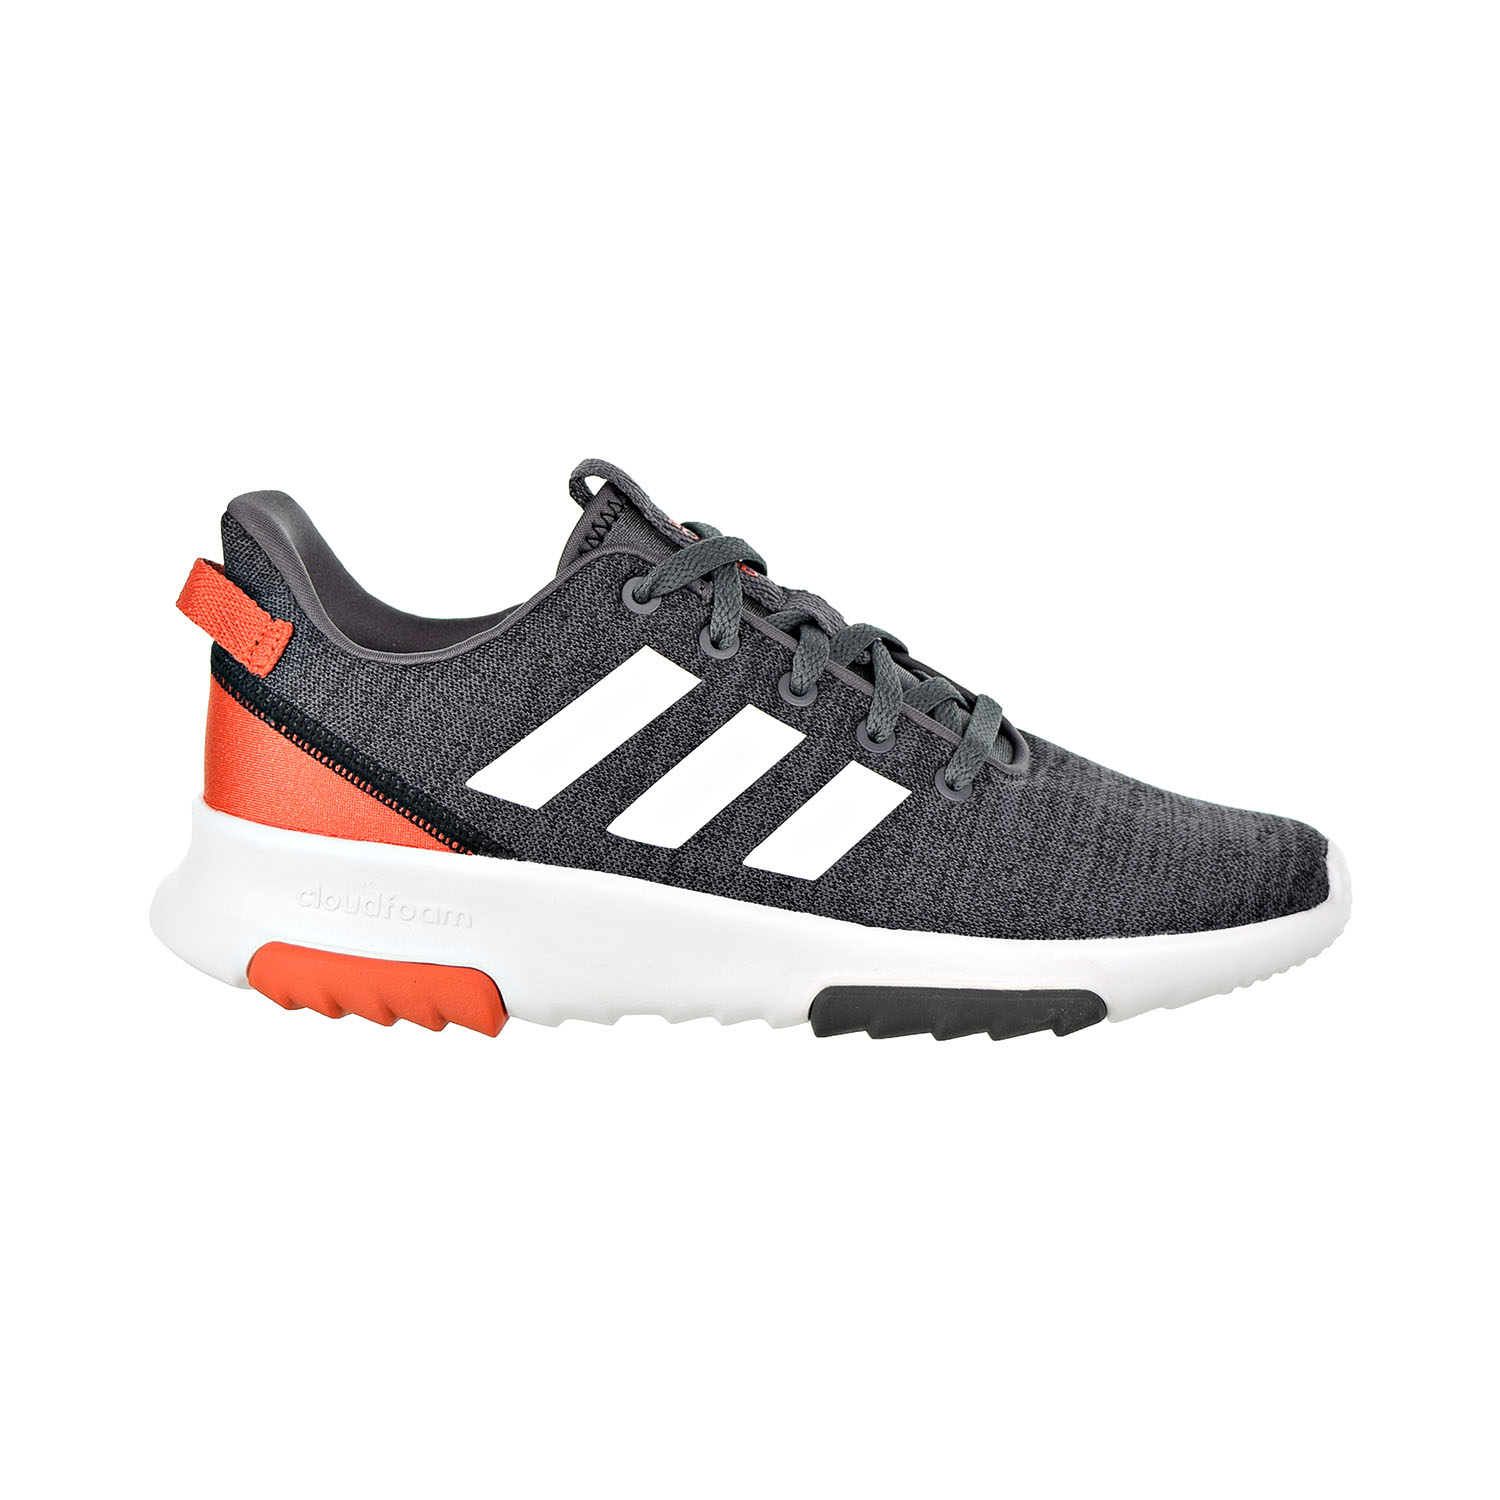 Adidas Sneakers In India Adidas Cloudfoam Racer Tr Mens